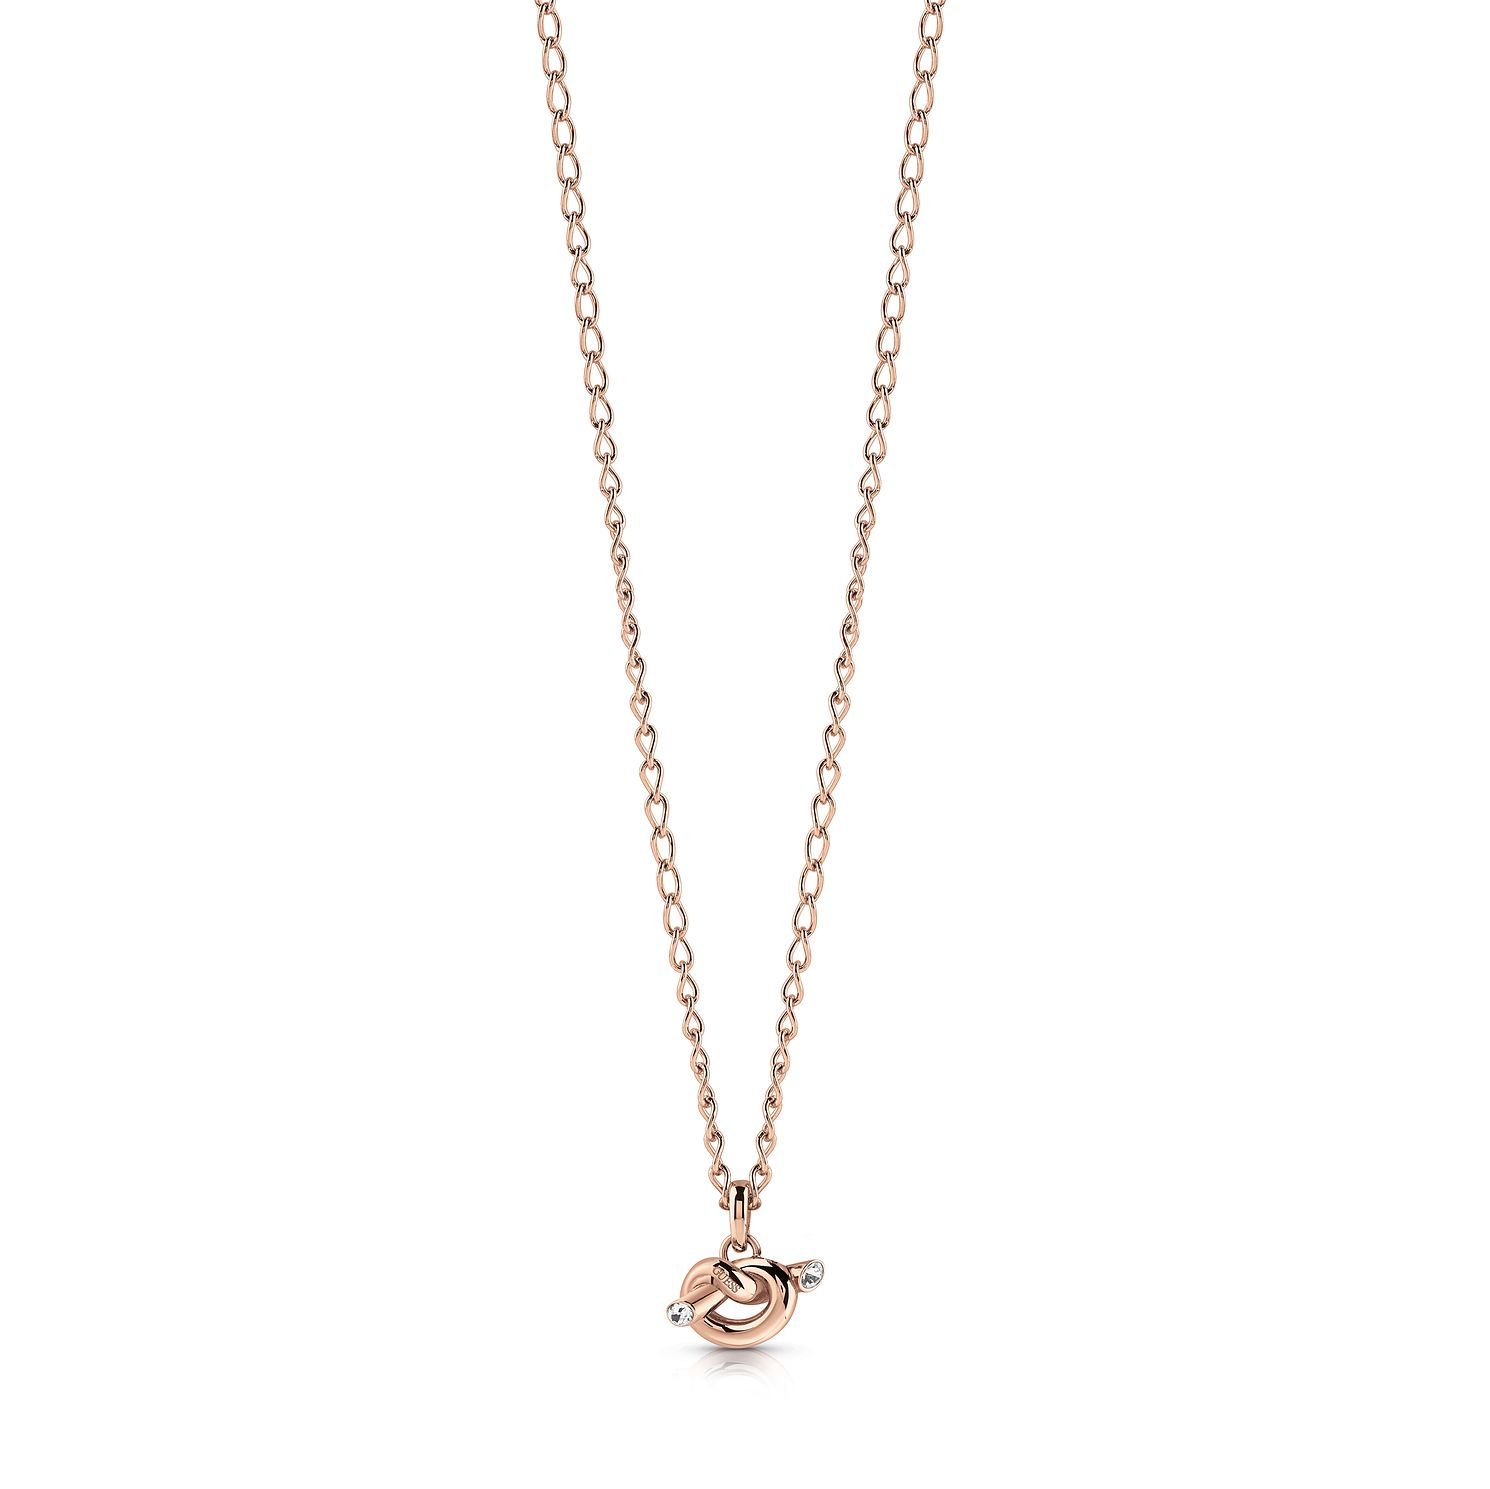 Guess Rose Gold Tone Swarovski Crystal Knot Necklace - Product number 5922216